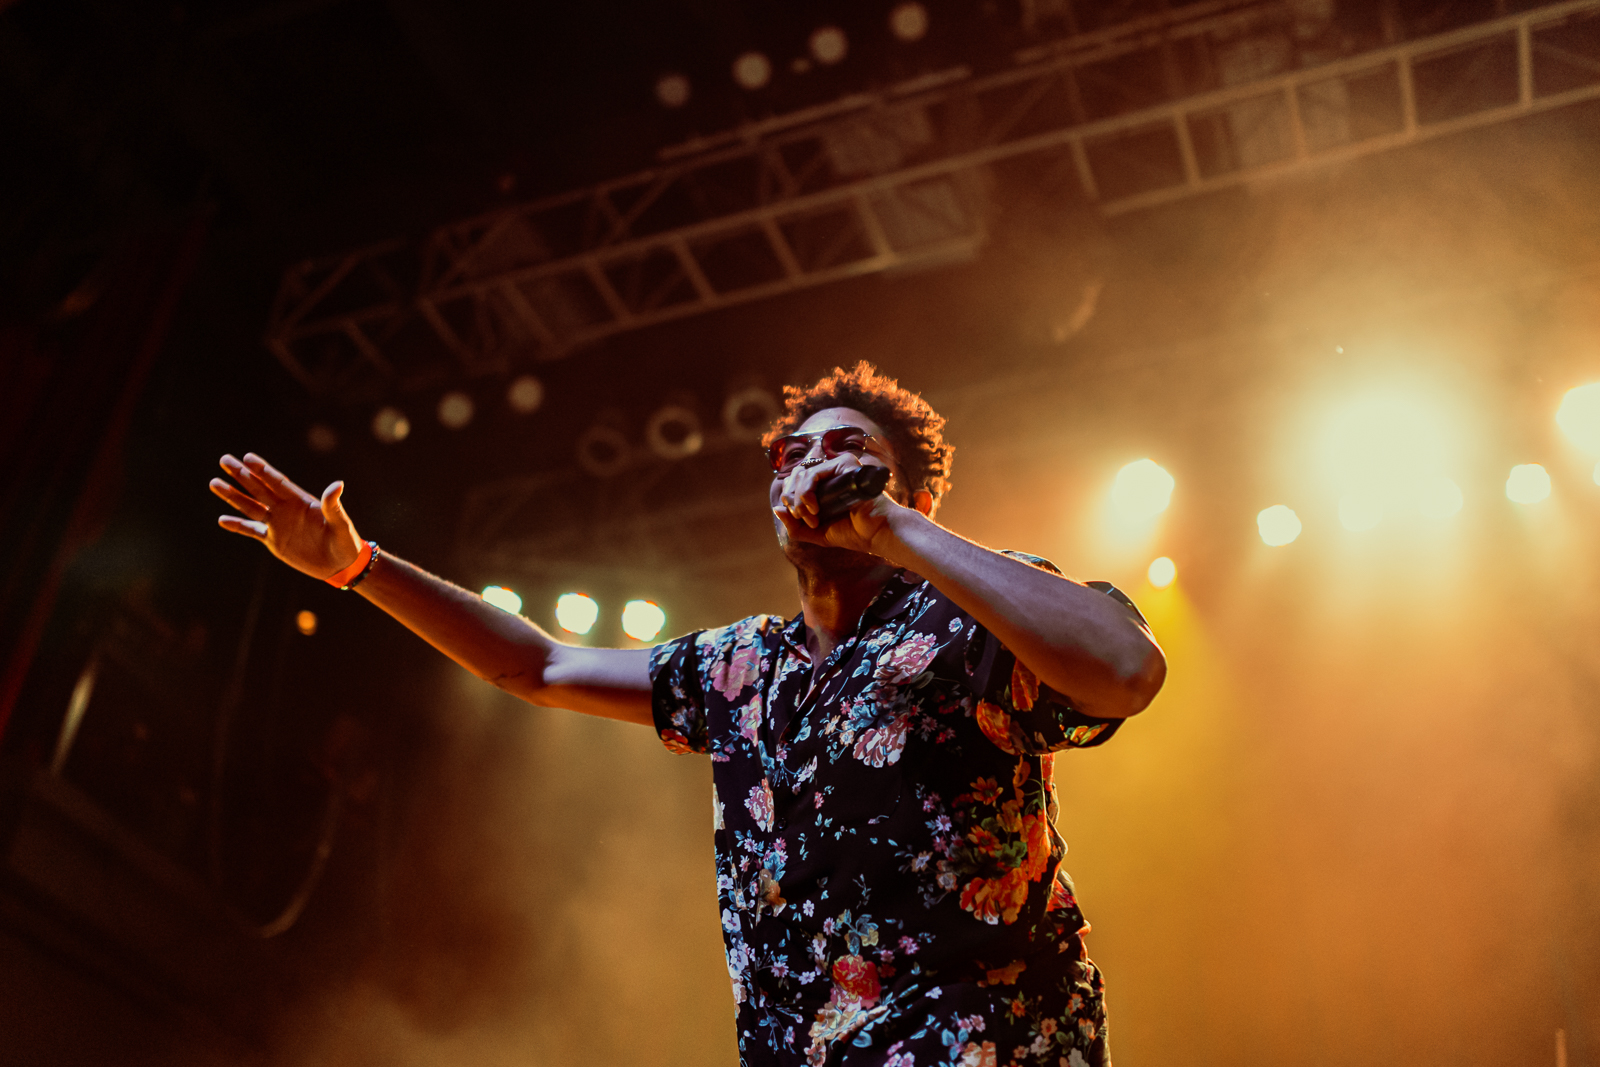 PHOTOS: Bryce Vine debuts new album 'Carnival' with summertime vibes